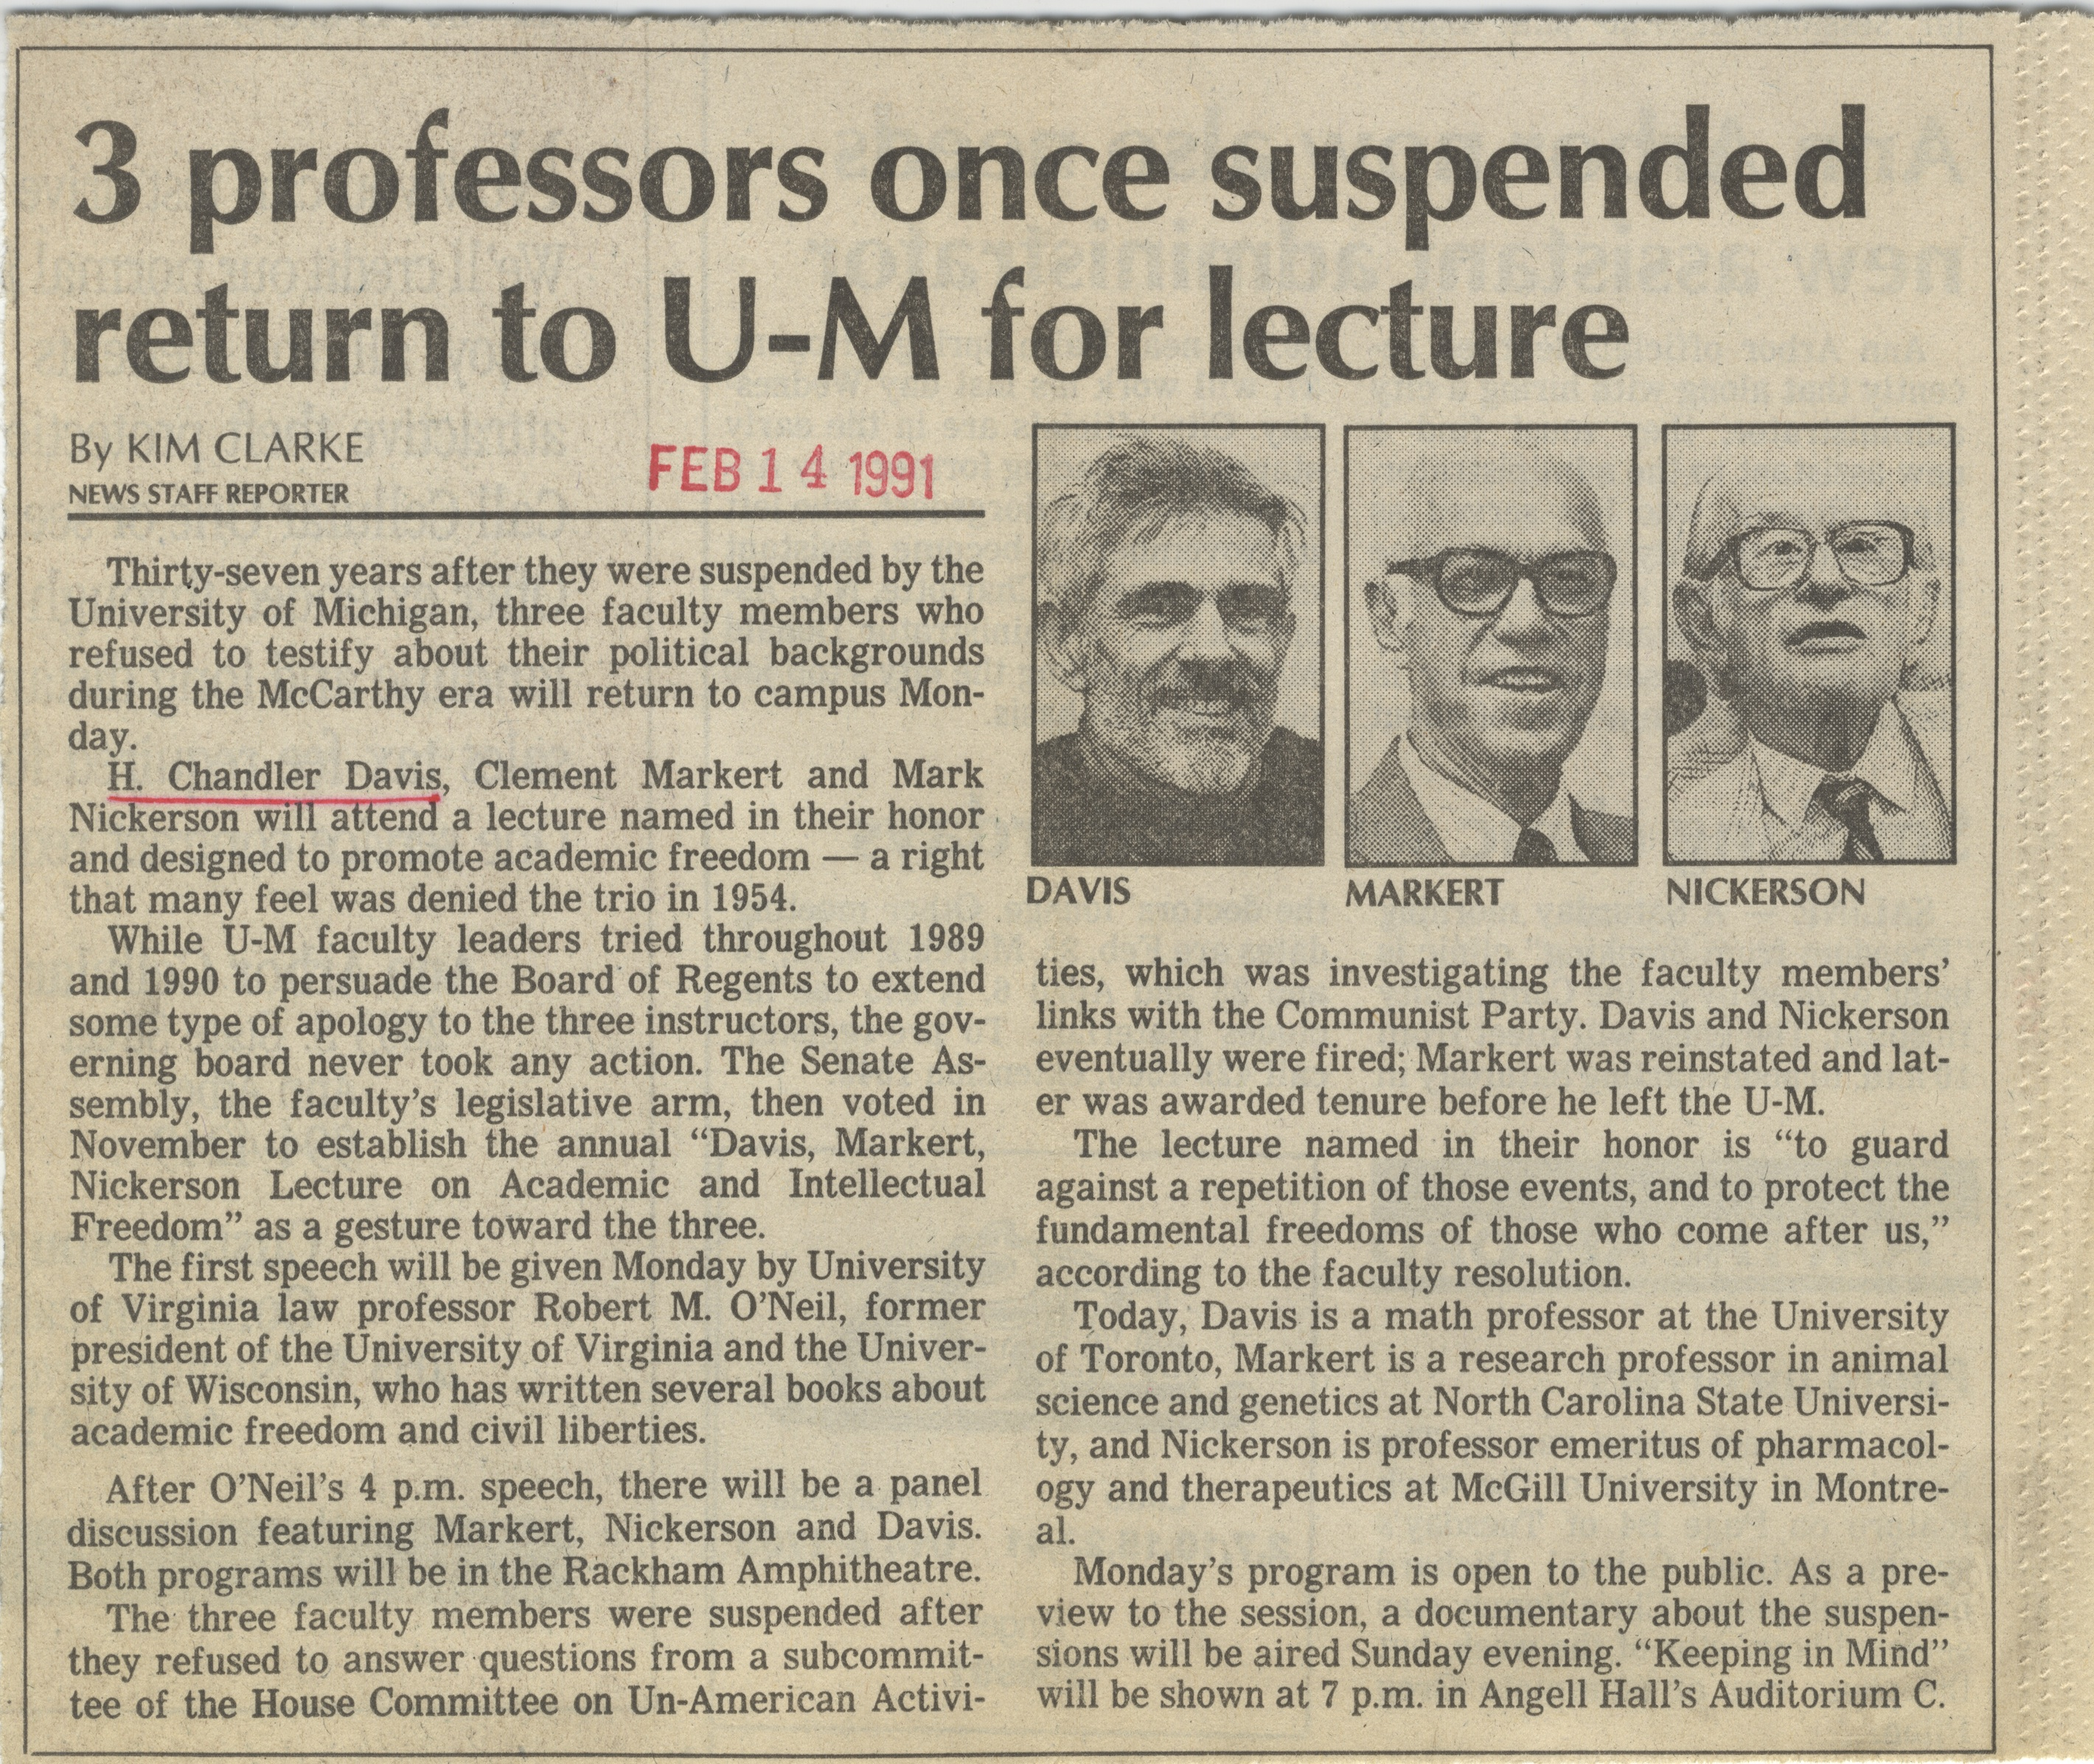 3 Professors Once Suspended Return To U-M For Lecture image